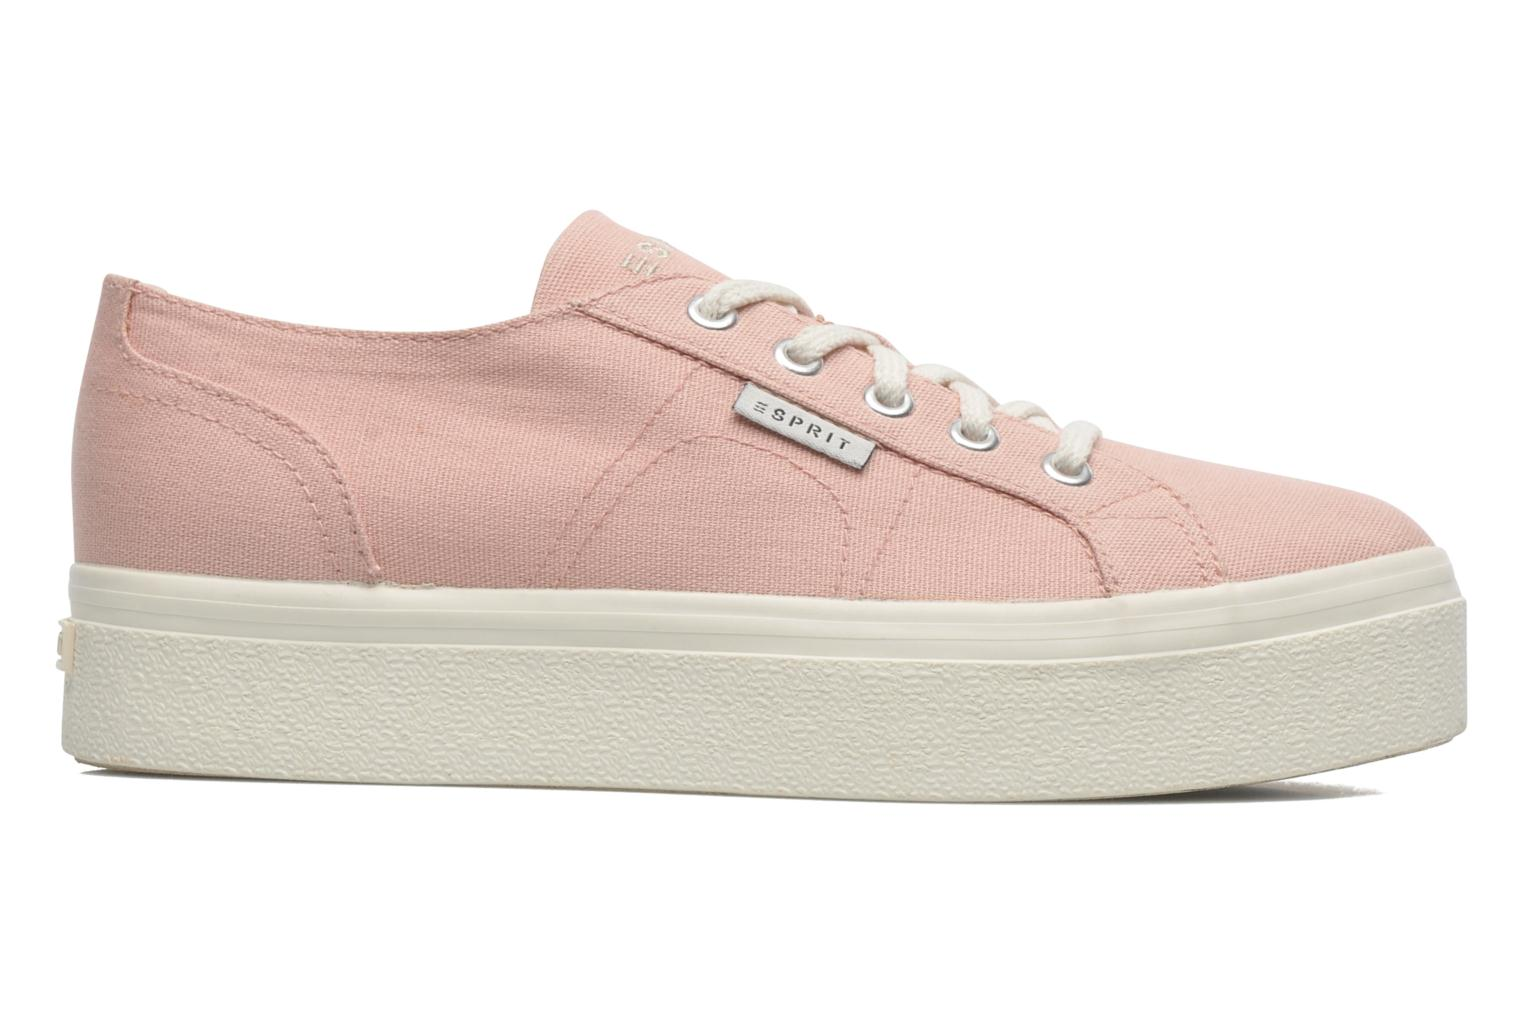 Sneakers Esprit Starry Lace up 045 Rosa immagine posteriore